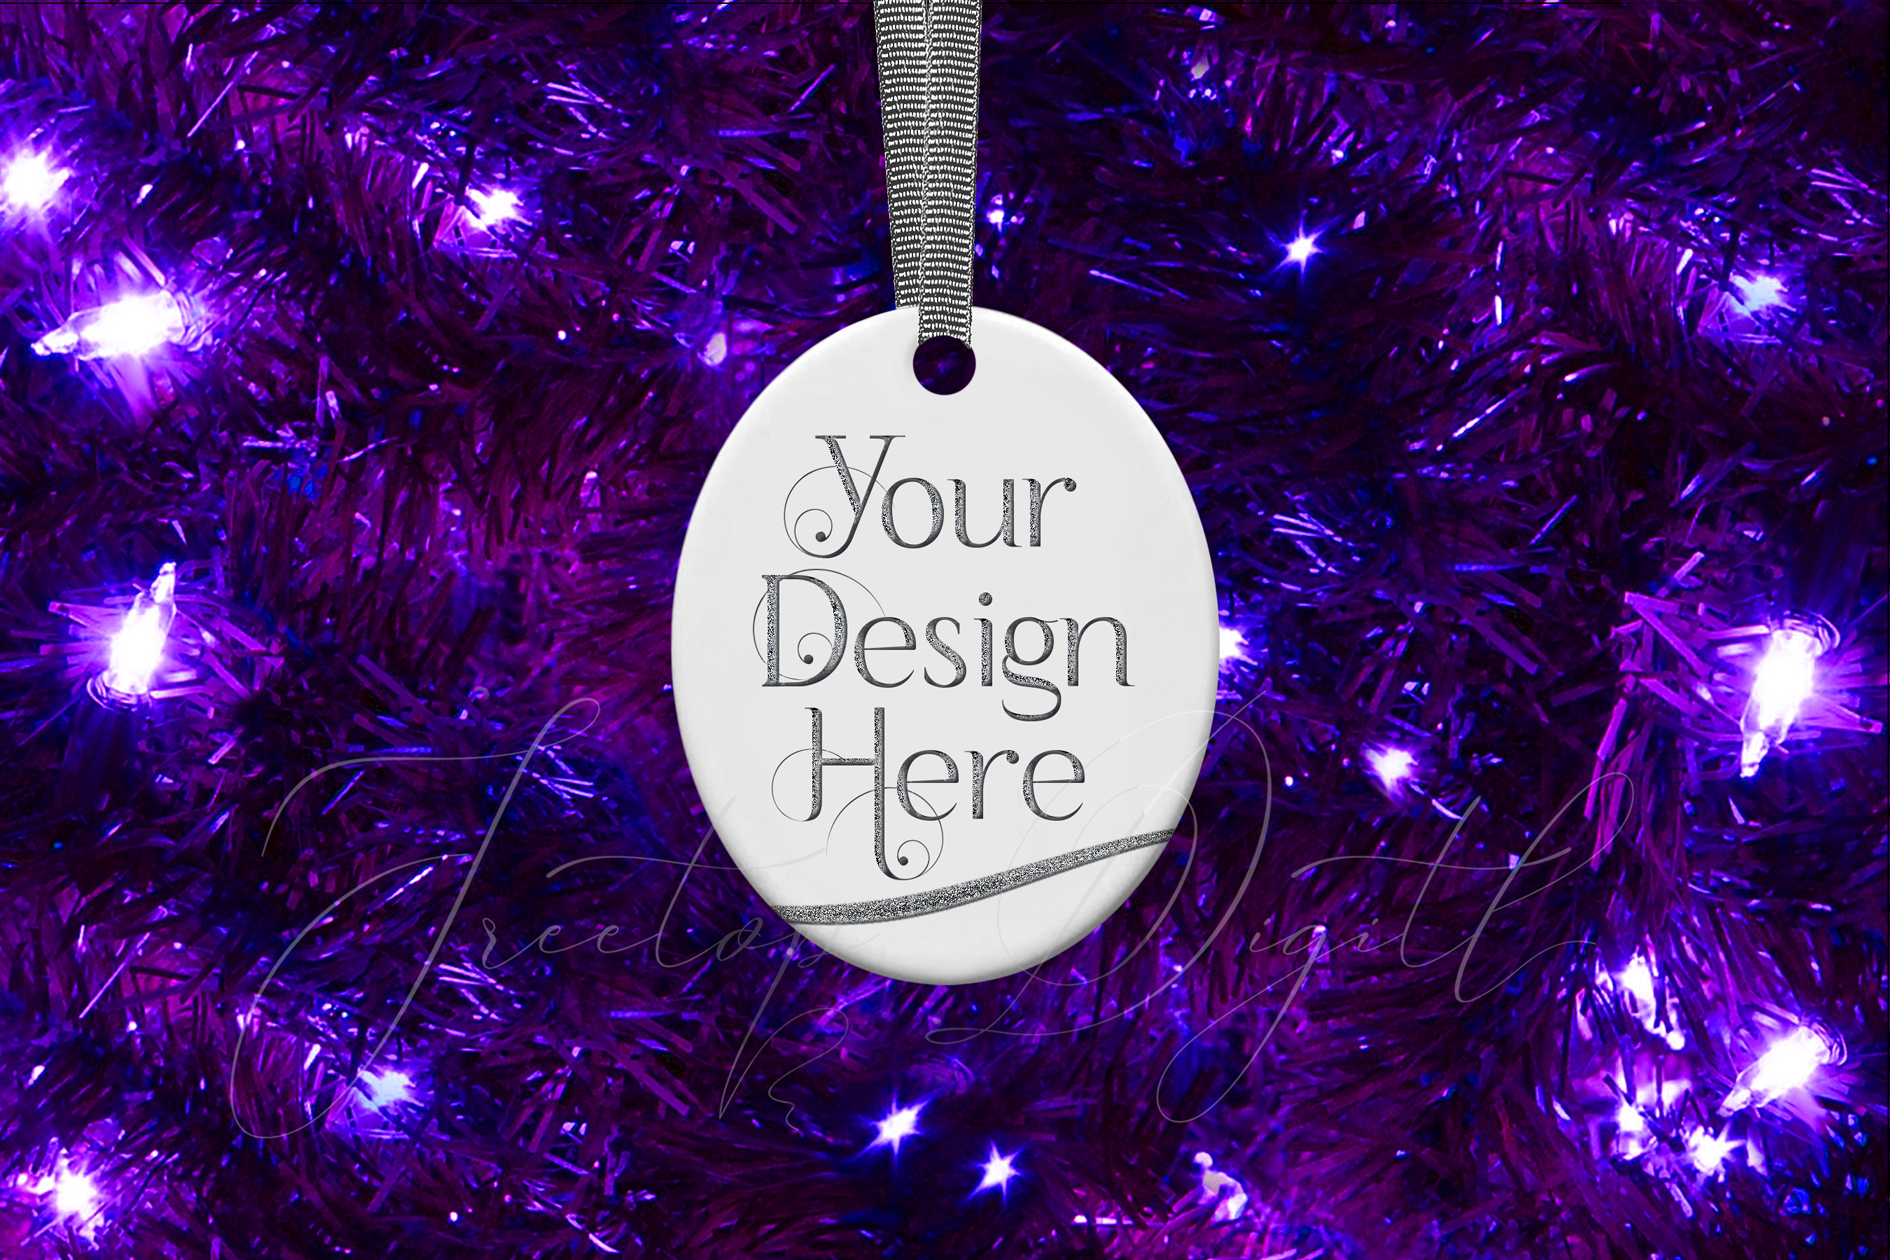 Oval Christmas Ornament Mockup, Sublimation Mock-Up, PSD example image 9